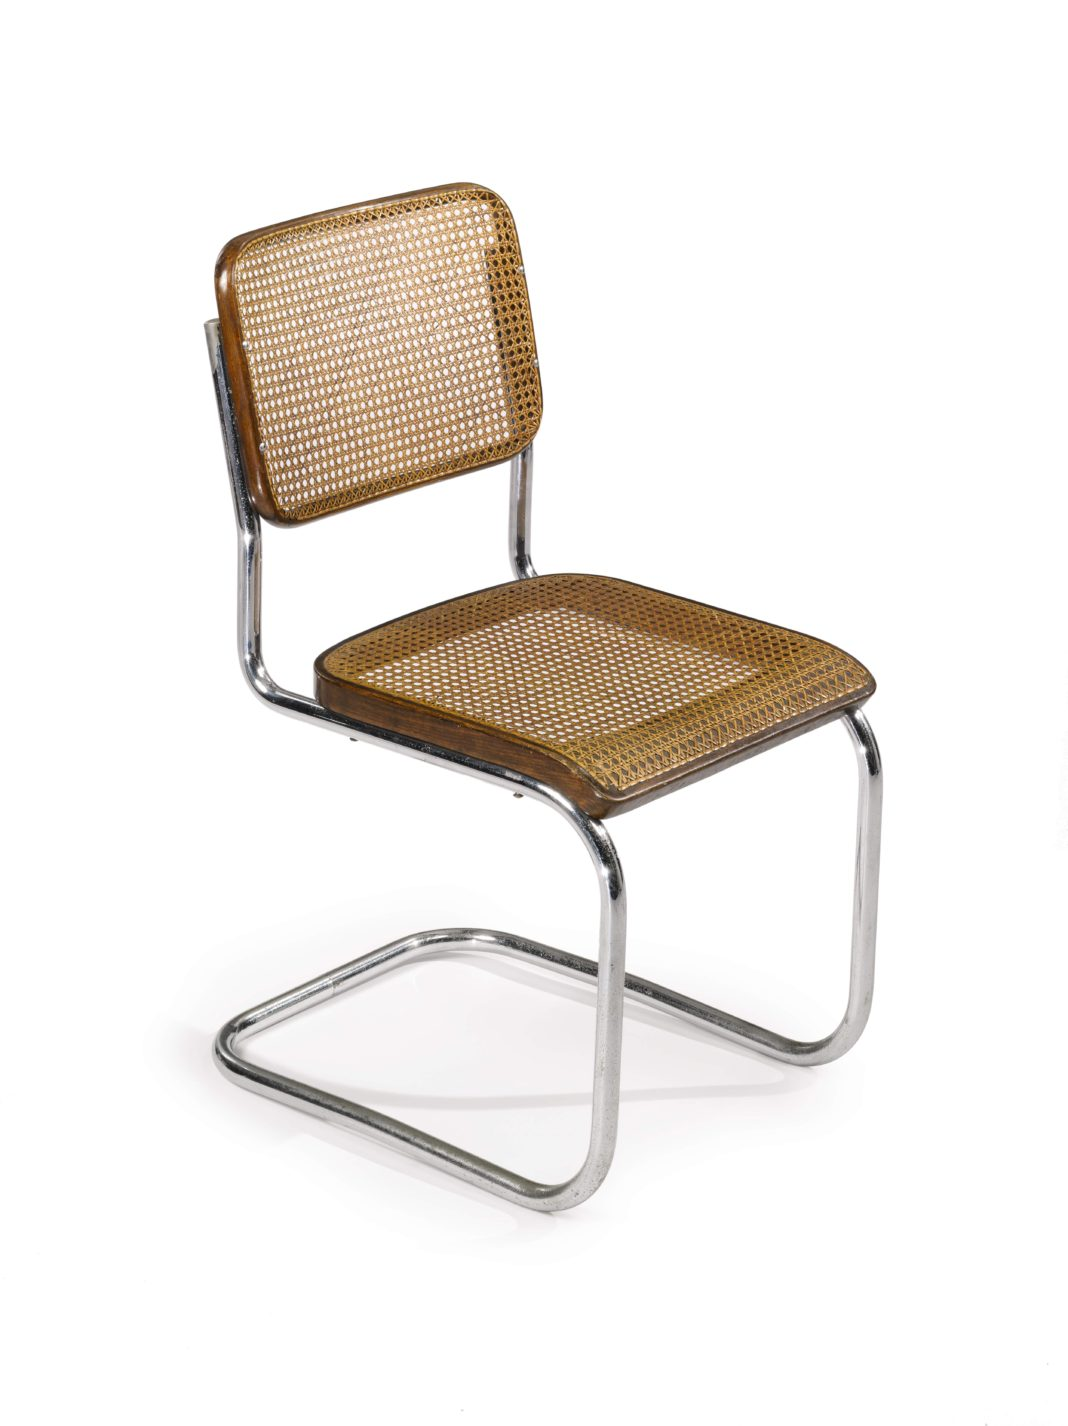 Cantilevered chair with a tubular steel frame and woven cane seat and back.